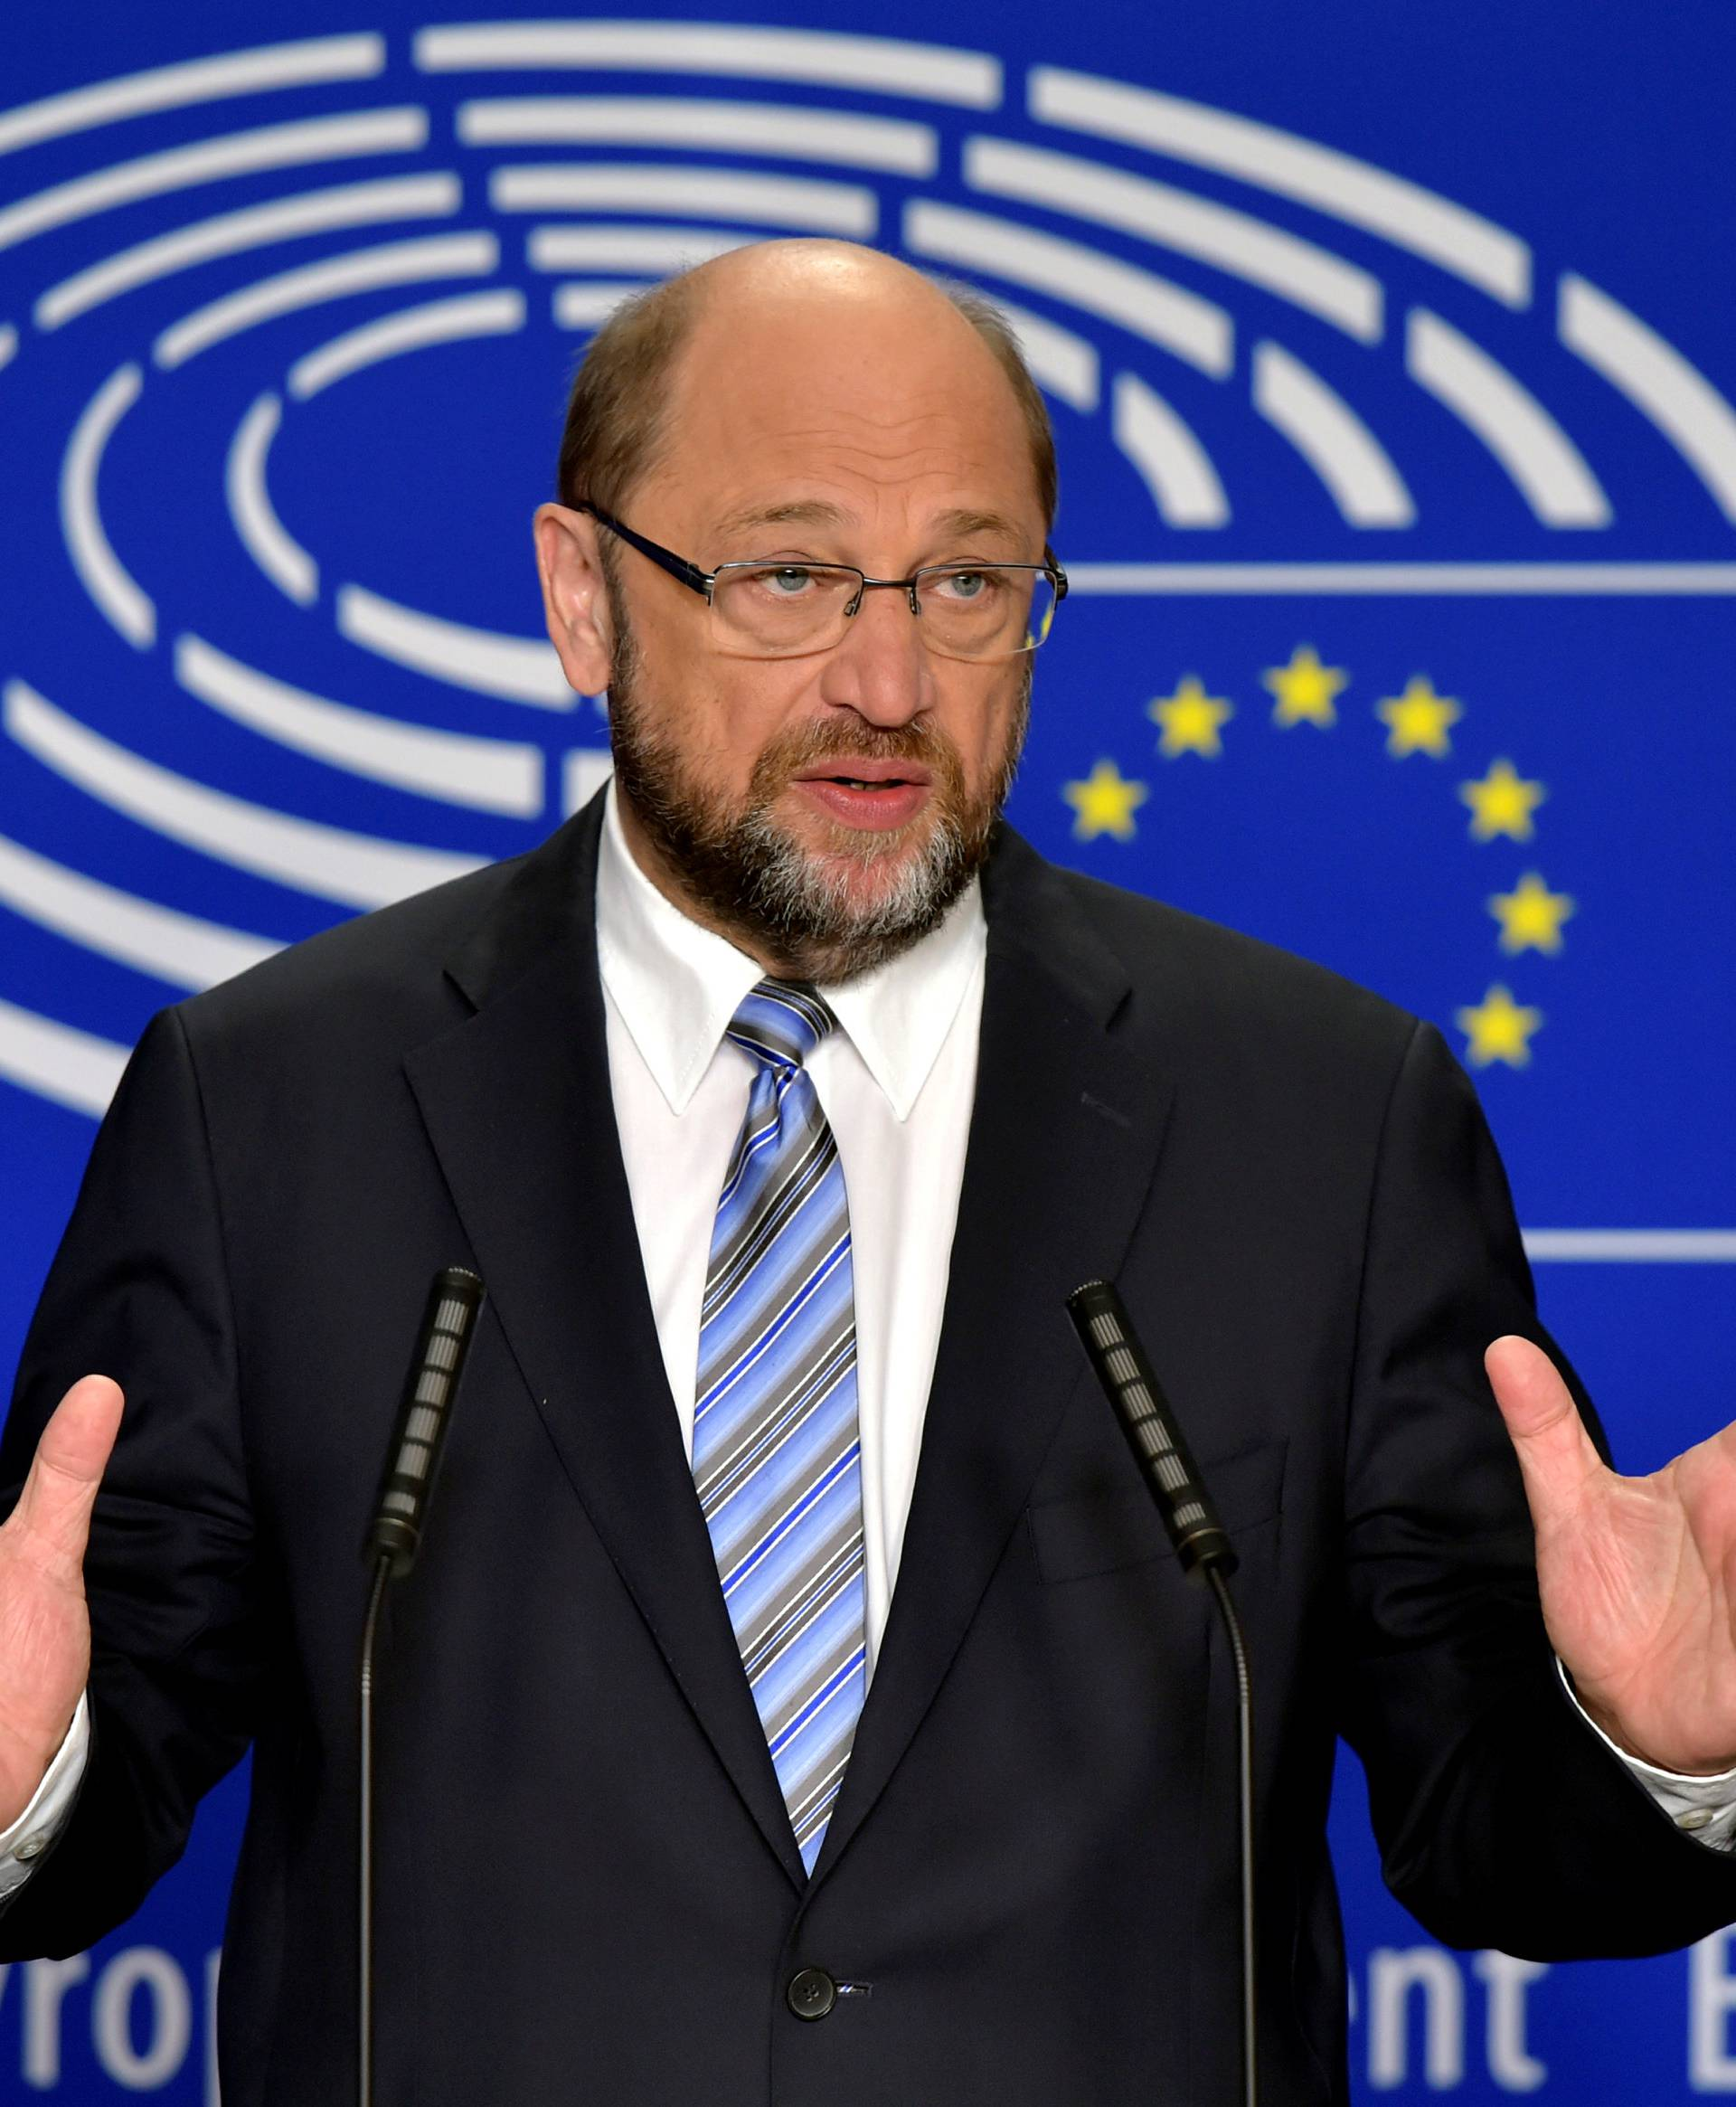 EP President Schulz gives a statement after the conference of Presidents at the European Parliament in Brussels